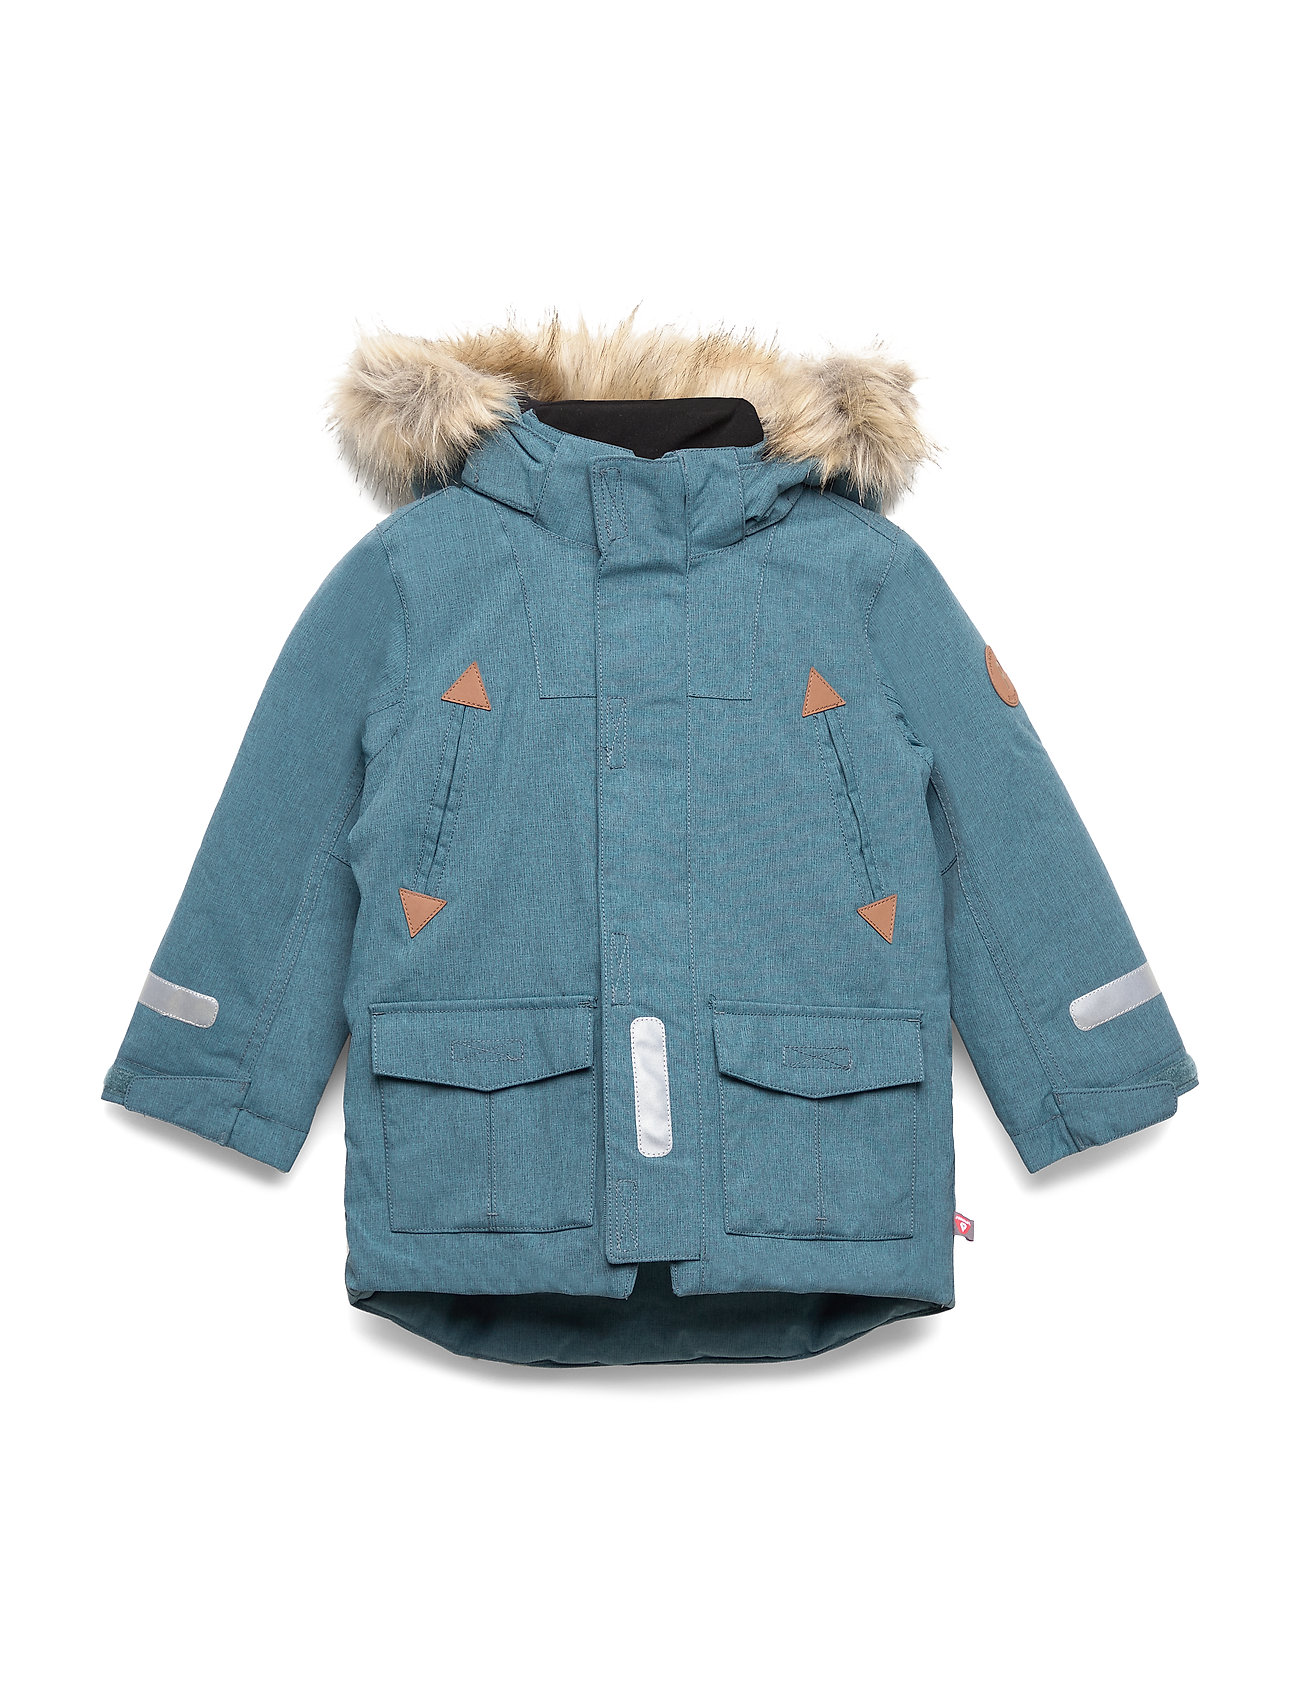 Polarn O. Pyret Jacket Padded w Hood Preschool - STORM BLUE